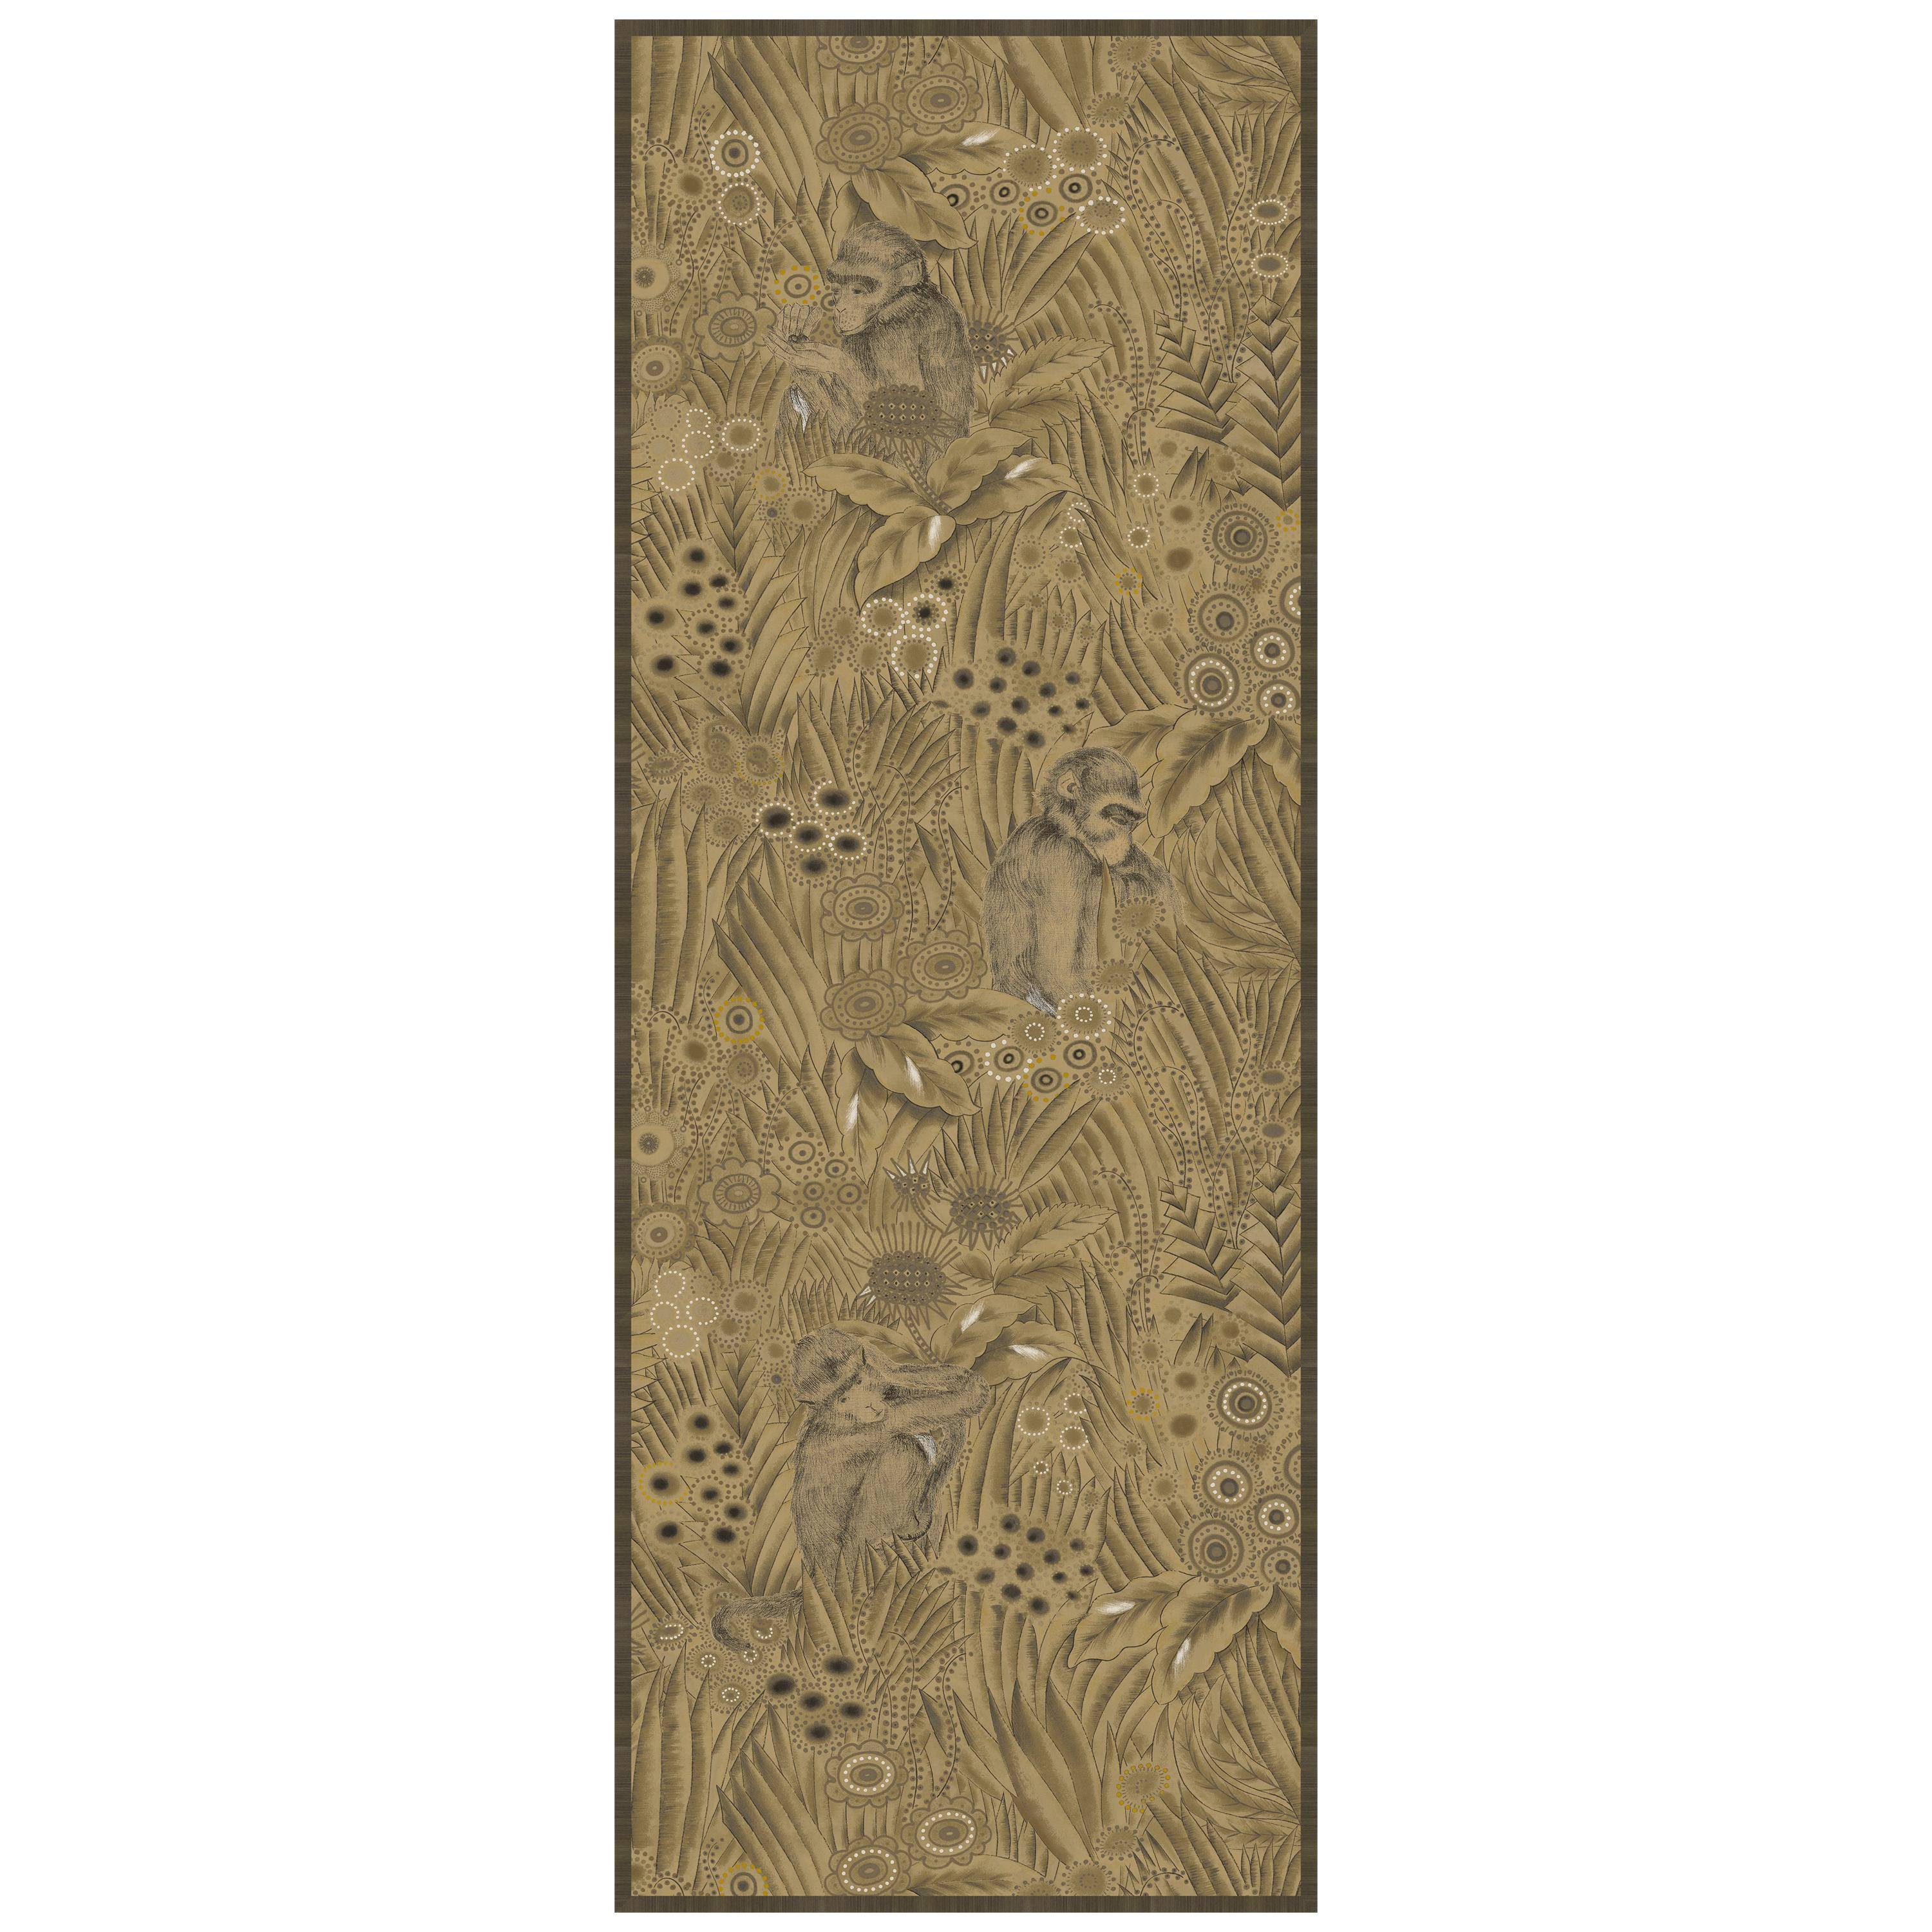 Etro Home Interiors Dunand Print on Canvas